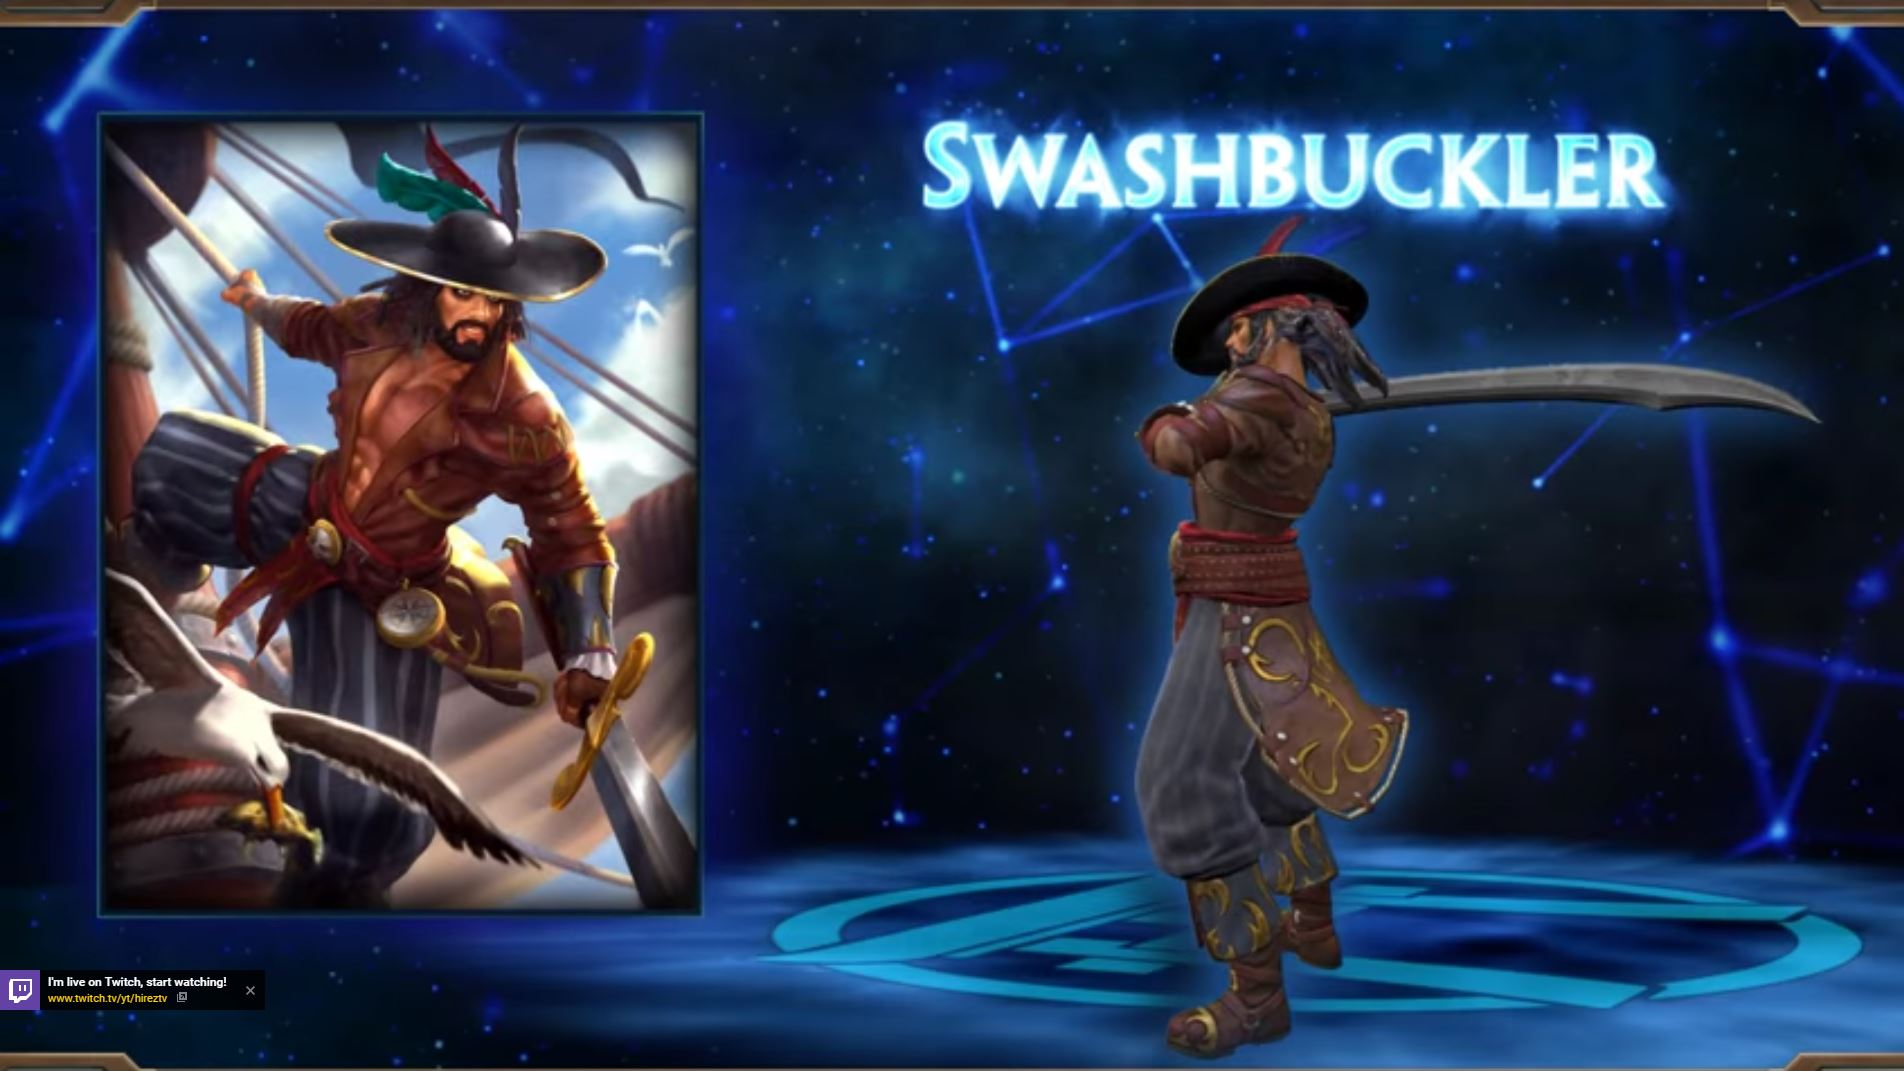 -SMITE - New Skin for Susano - Swashbuckler - YouTube